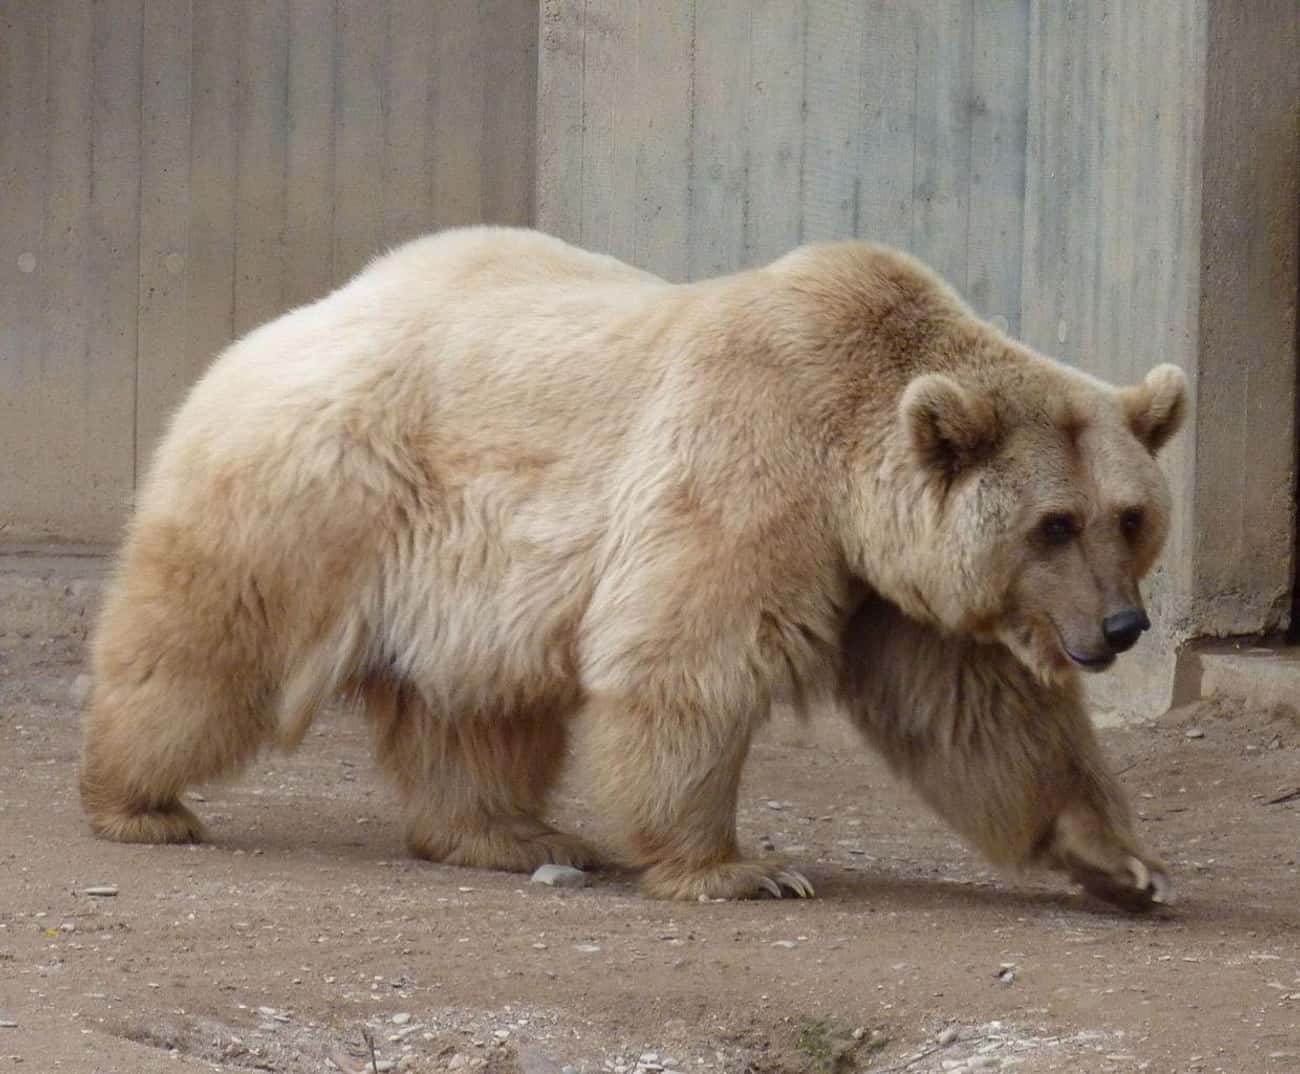 The Grolar Bear Is A Breed Established Thanks To Global Warming